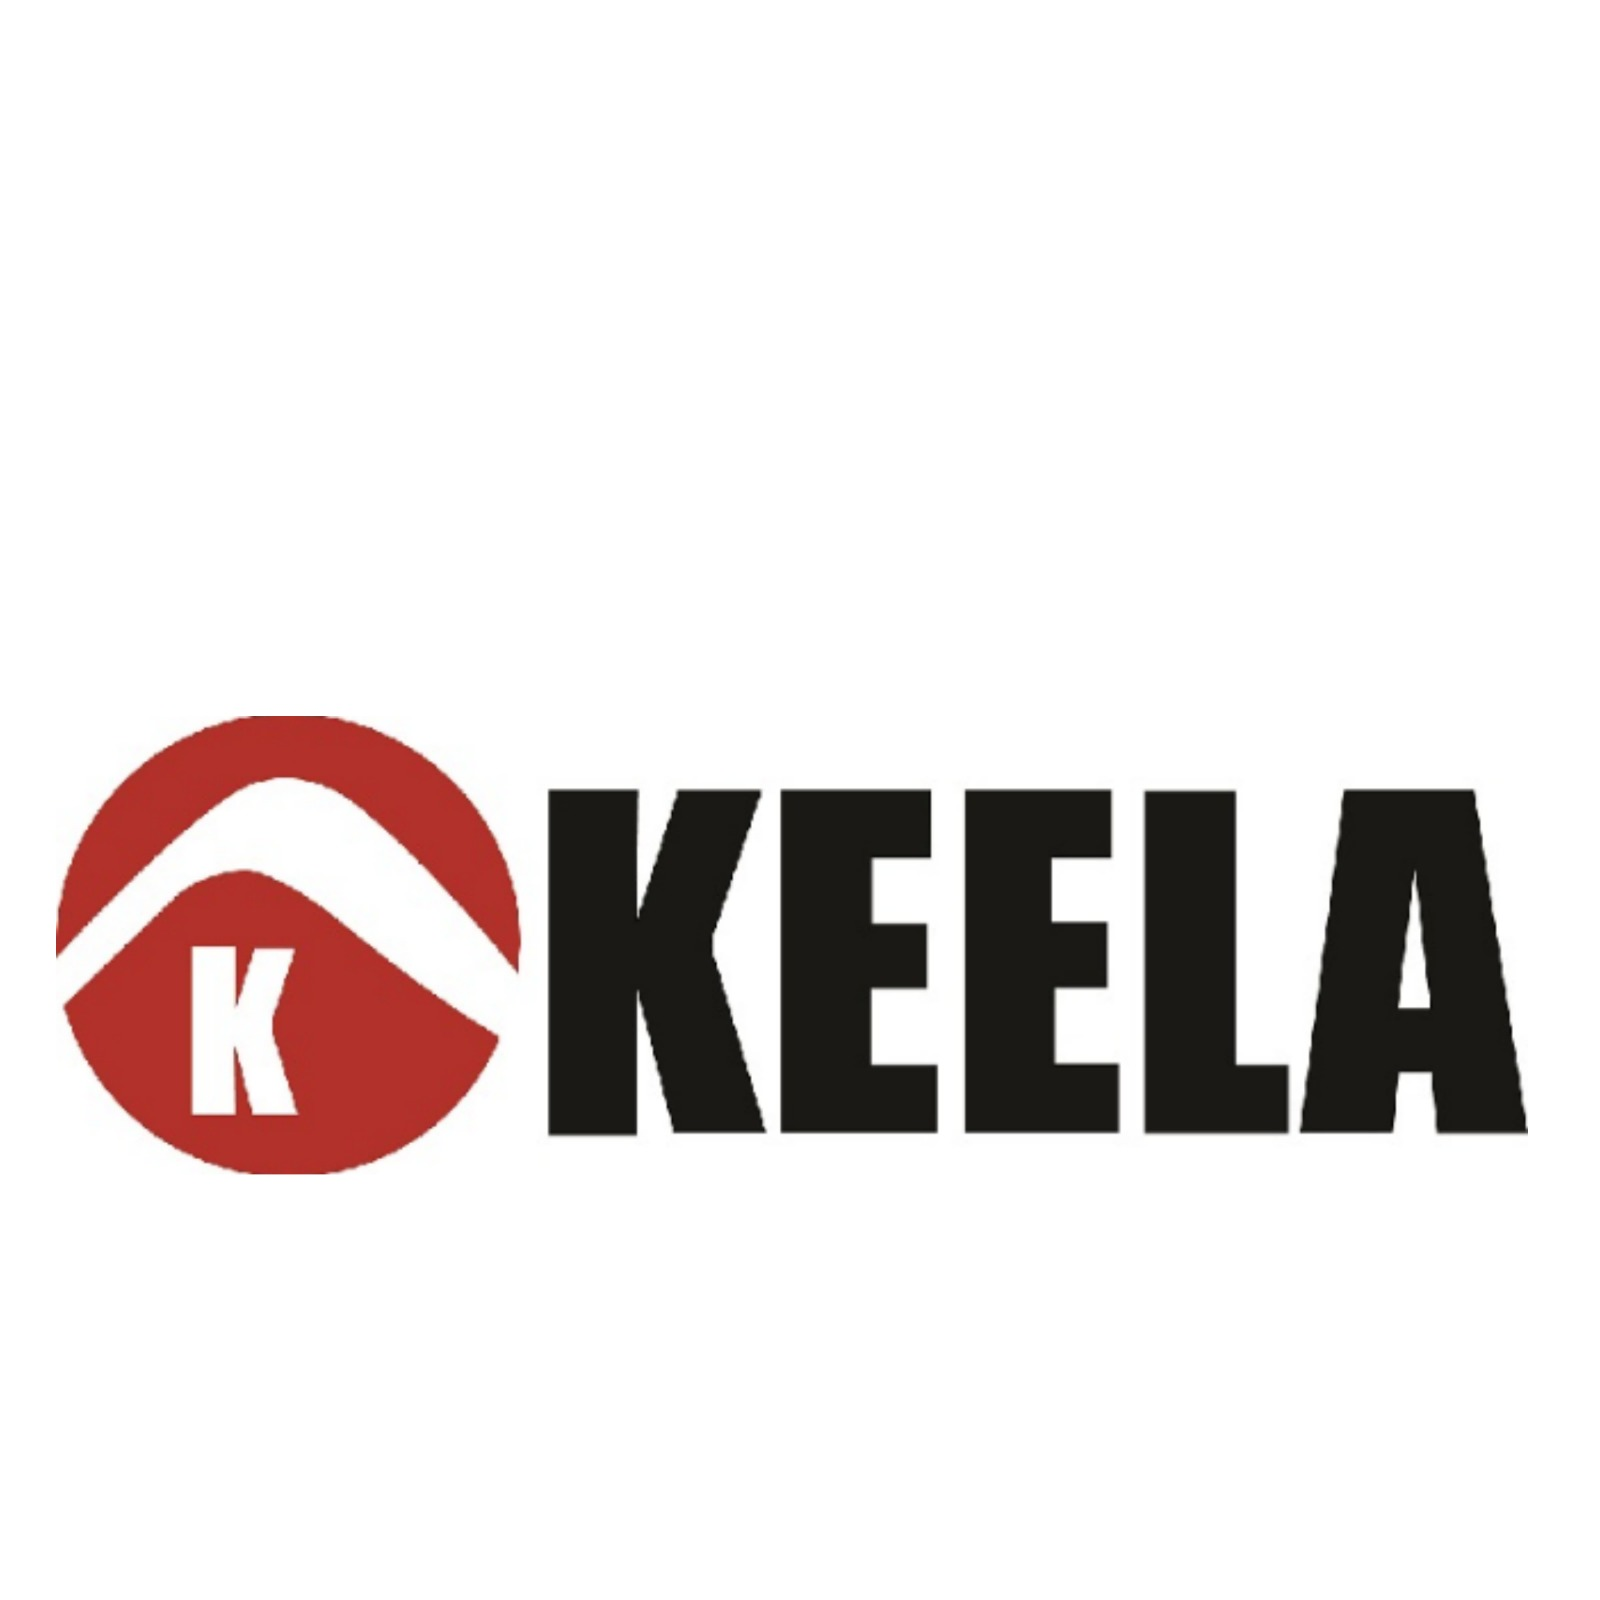 Keela children's waterproof clothing. All in one waterproof suits clothing